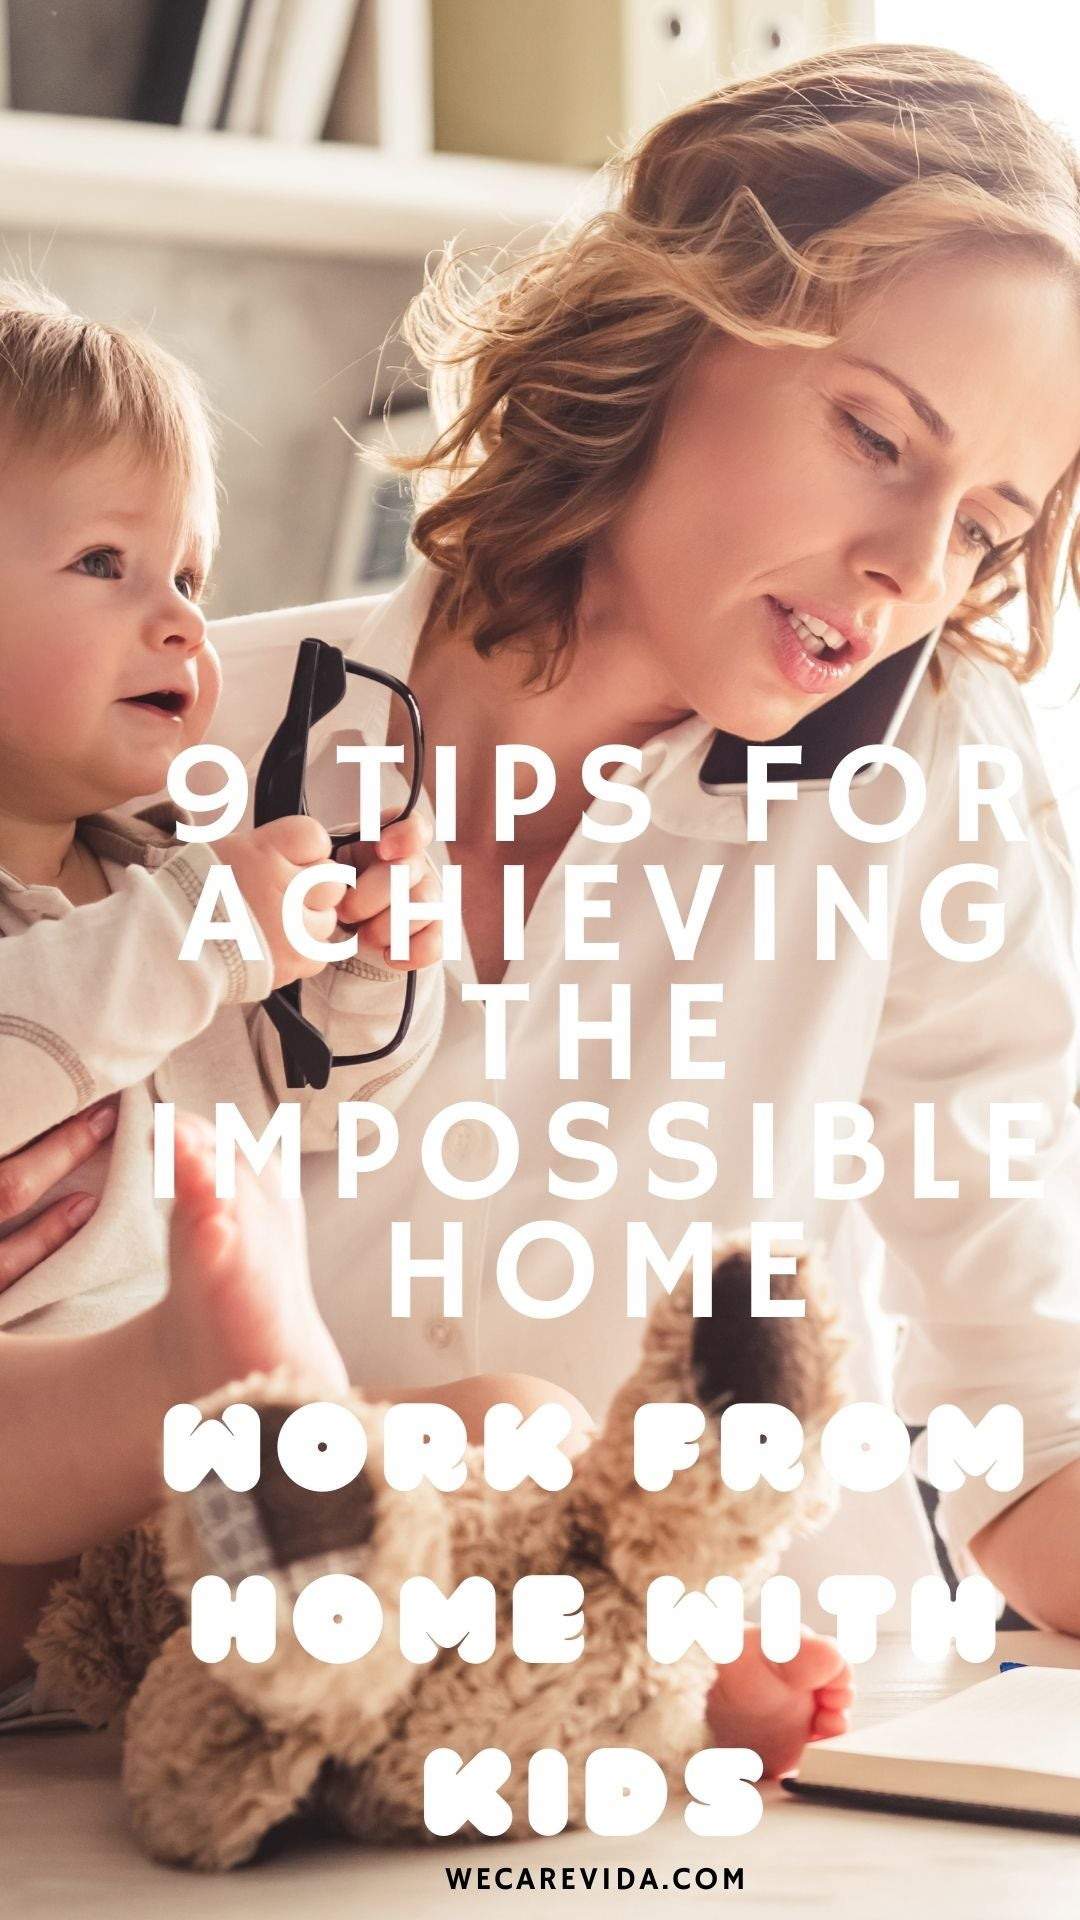 9 TIPS FOR ACHIEVING THE IMPOSSIBLE: WORK FROM HOME WITH KIDS